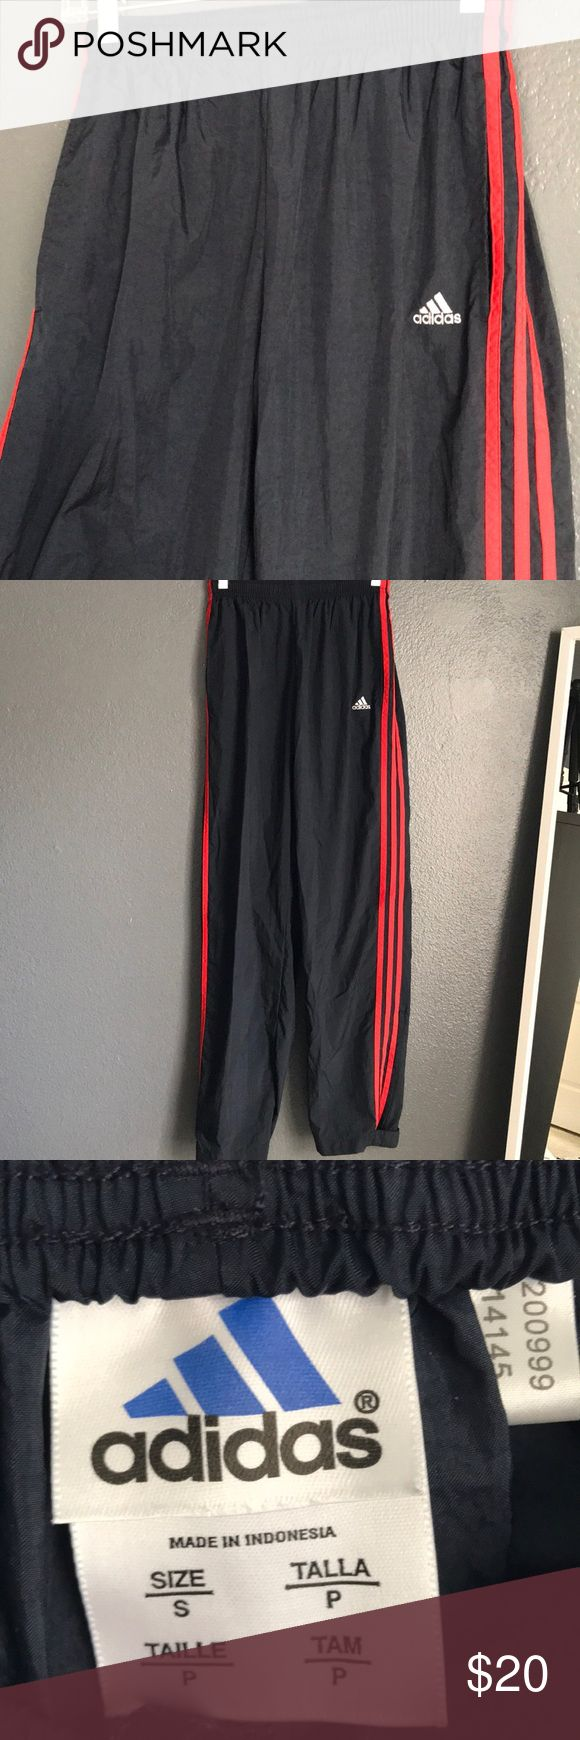 Adidas Track Pants Adidas Track Pants, size Small. Dark blue with red lines. adidas Pants Track Pants & Joggers